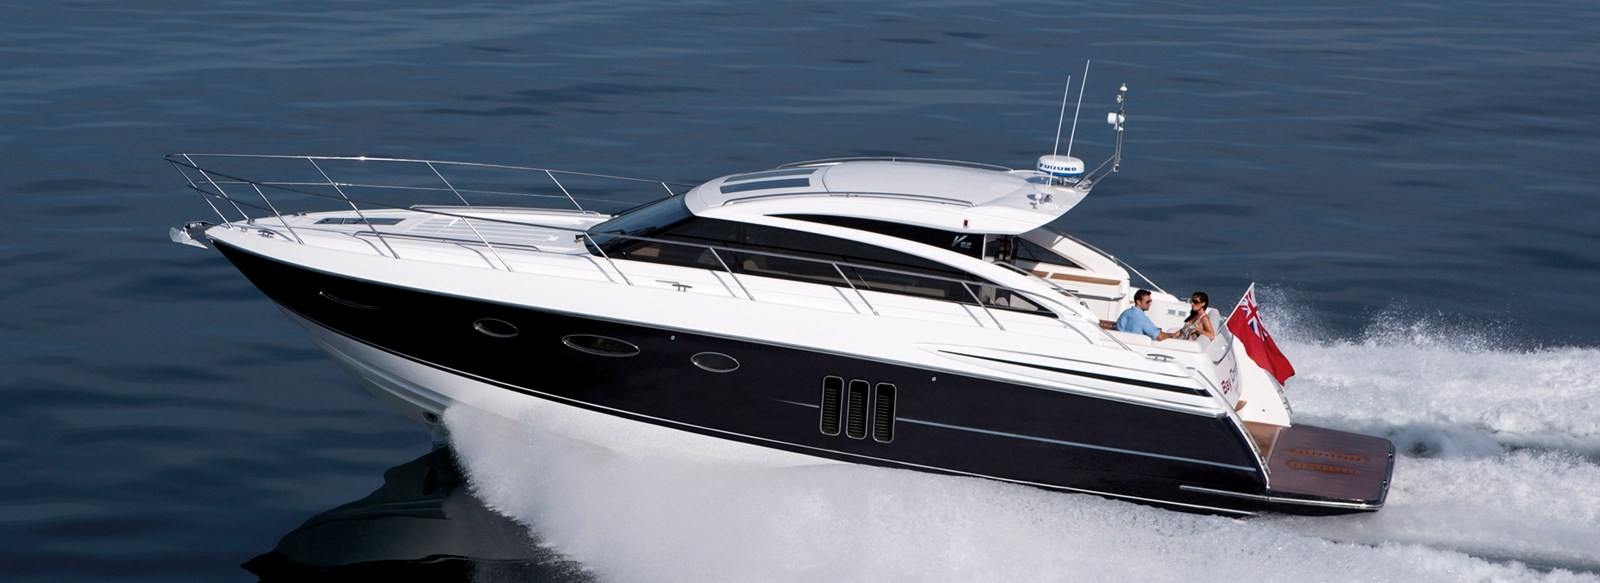 New Princess V52 Express Yachts For Sale